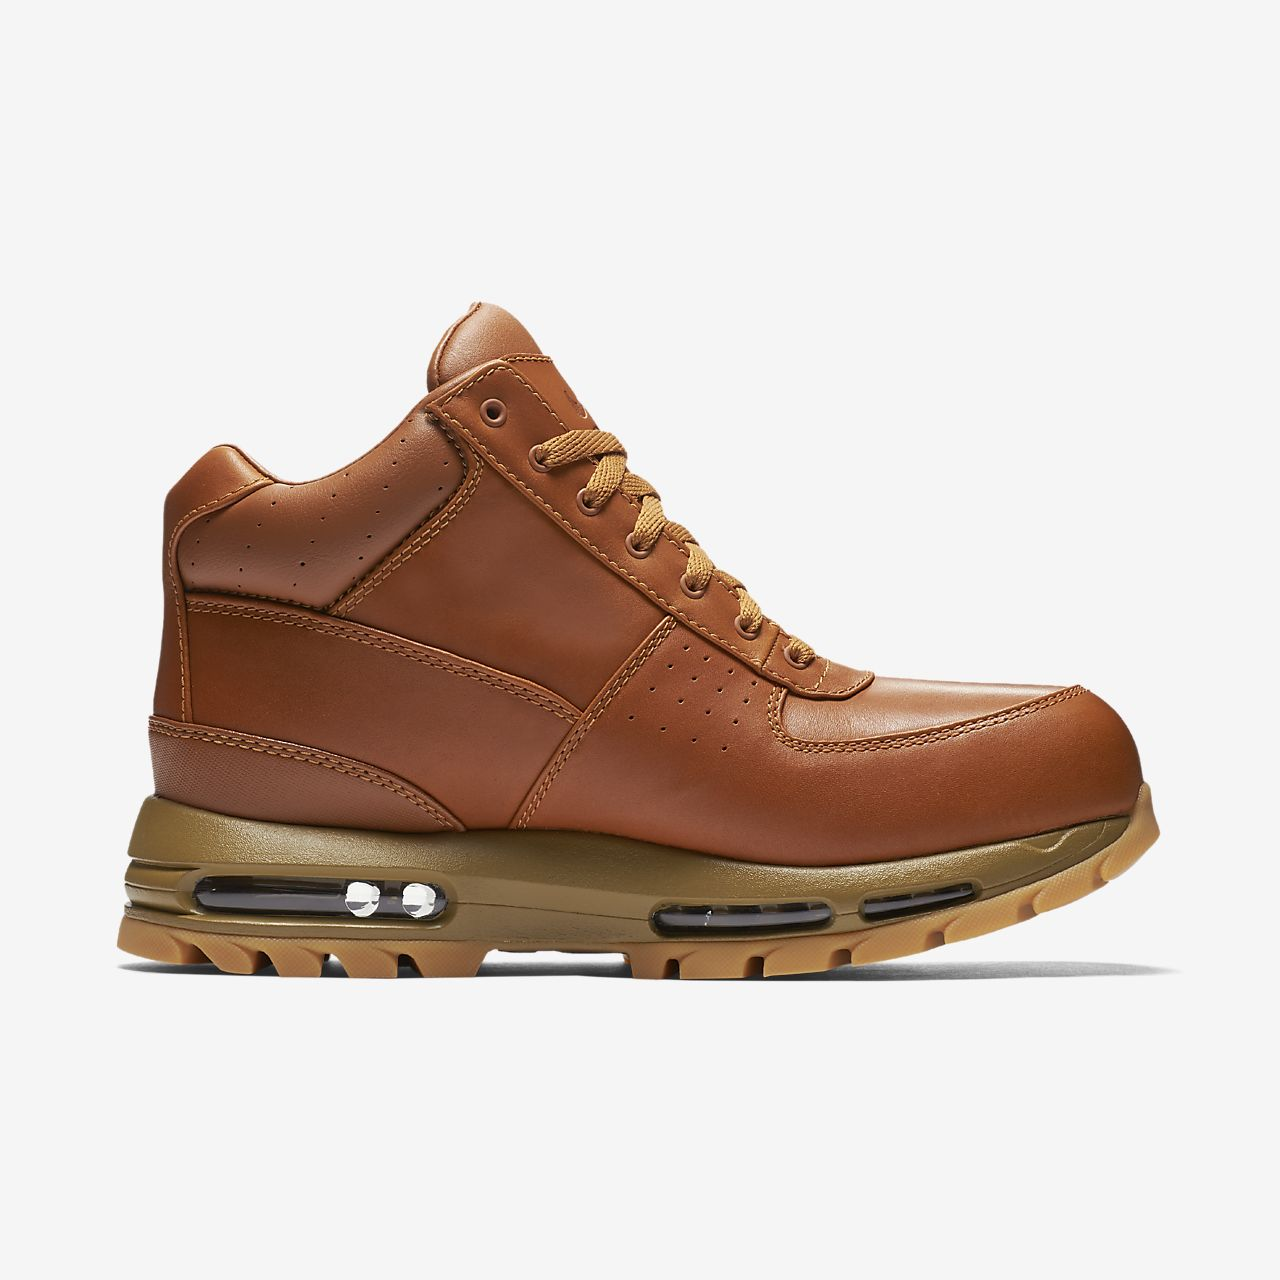 competitive price 79917 aadf6 ... Low Resolution Nike Air Max Goadome Mens Boot Nike Air Max Goadome Mens  Boot ...